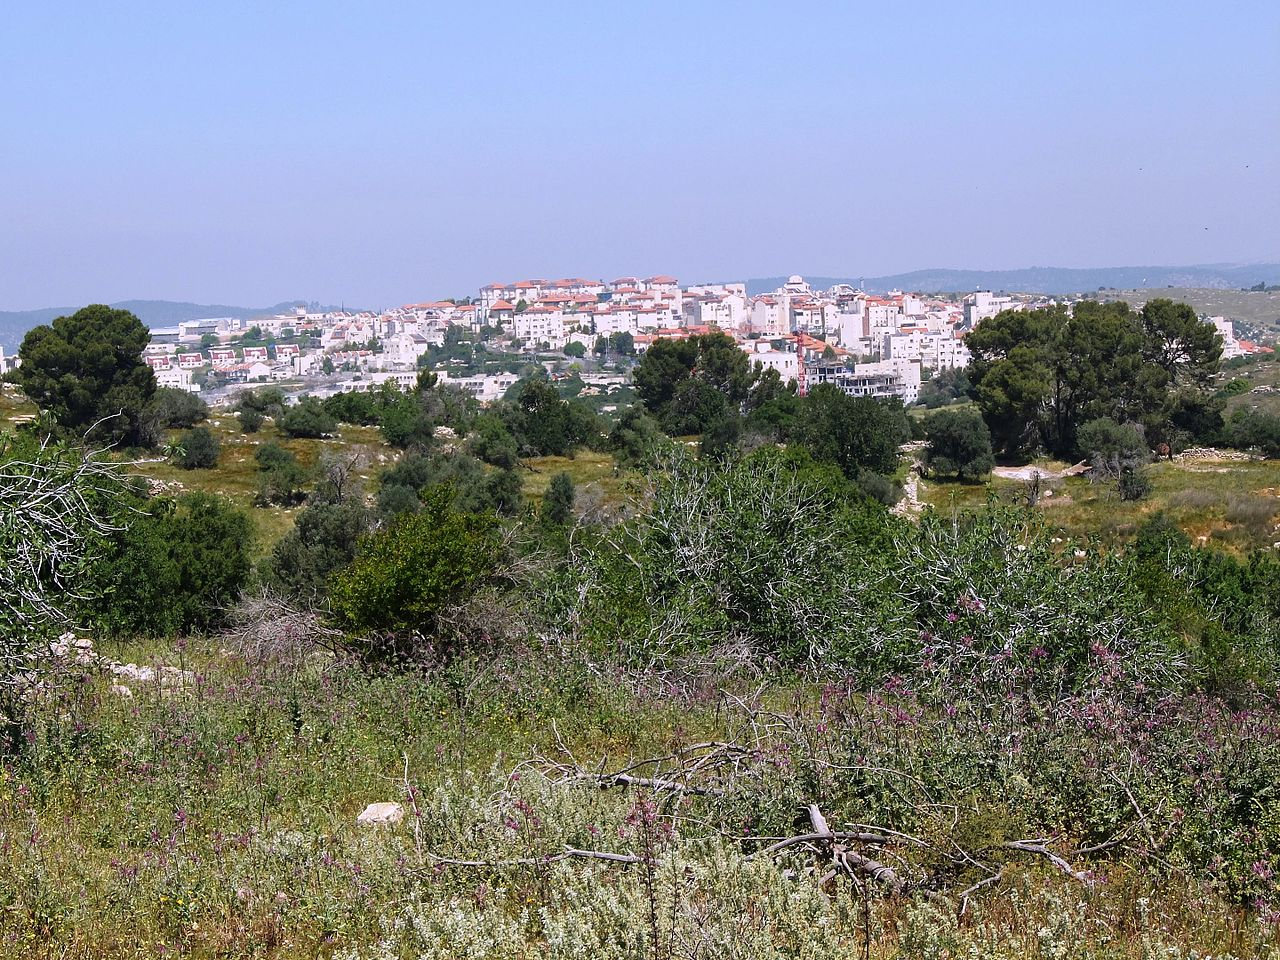 Ramat Beit Shemesh: File:Ramat Beit Shemesh, As Seen From Bayt Nattif, April